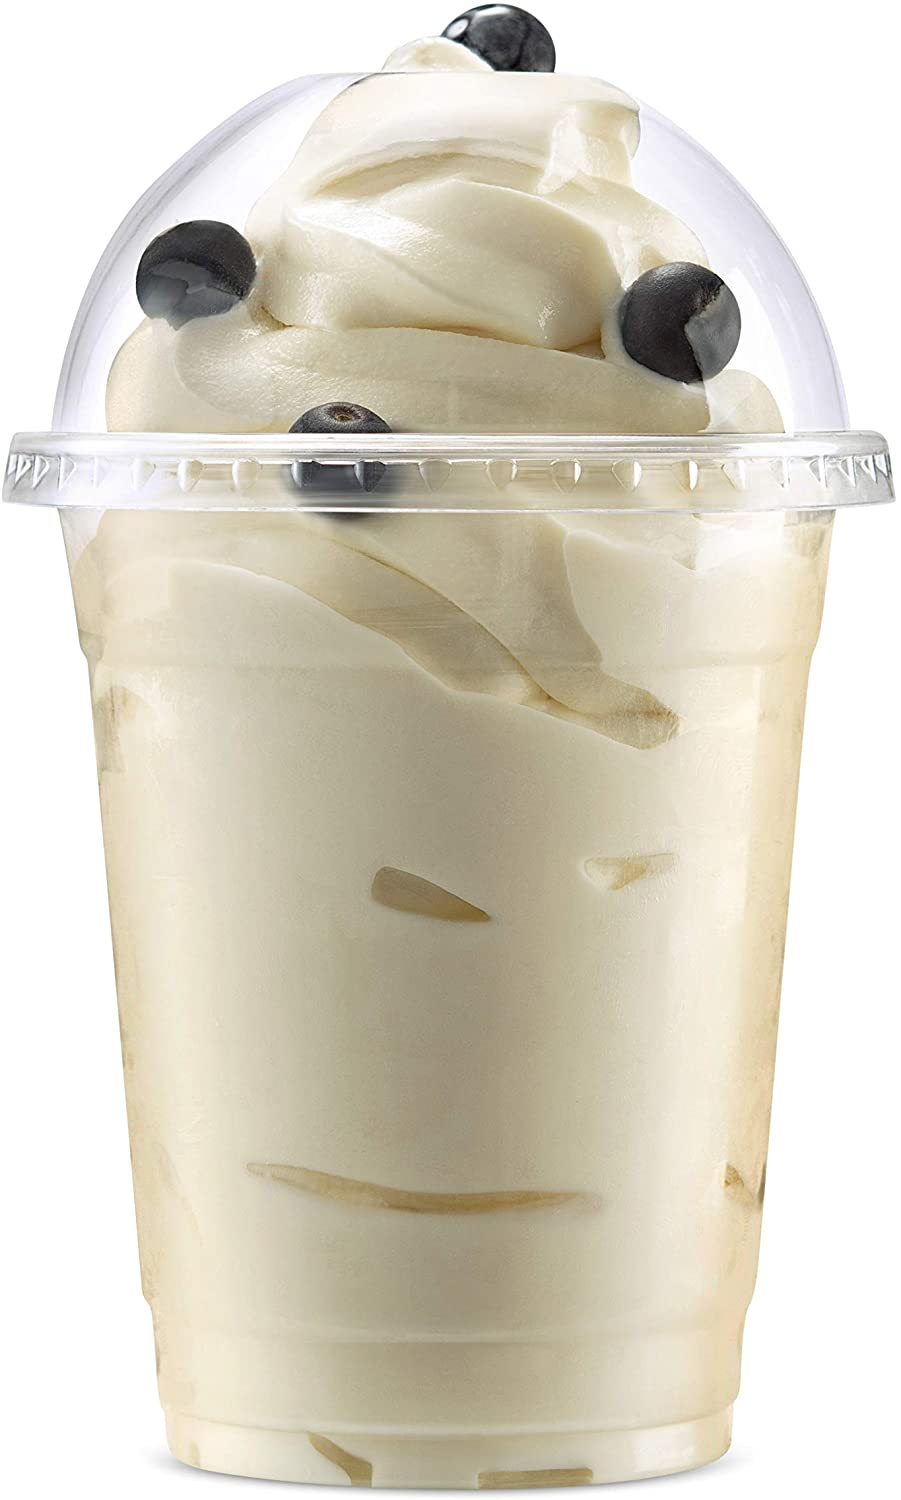 Disposable Plastic Cups with Lids by Green Direct - 12 oz. Party Cup with Dome lids for Cold Drinks - Bubble Boba - Iced Coffee - Tea - Smoothie Pack of 100